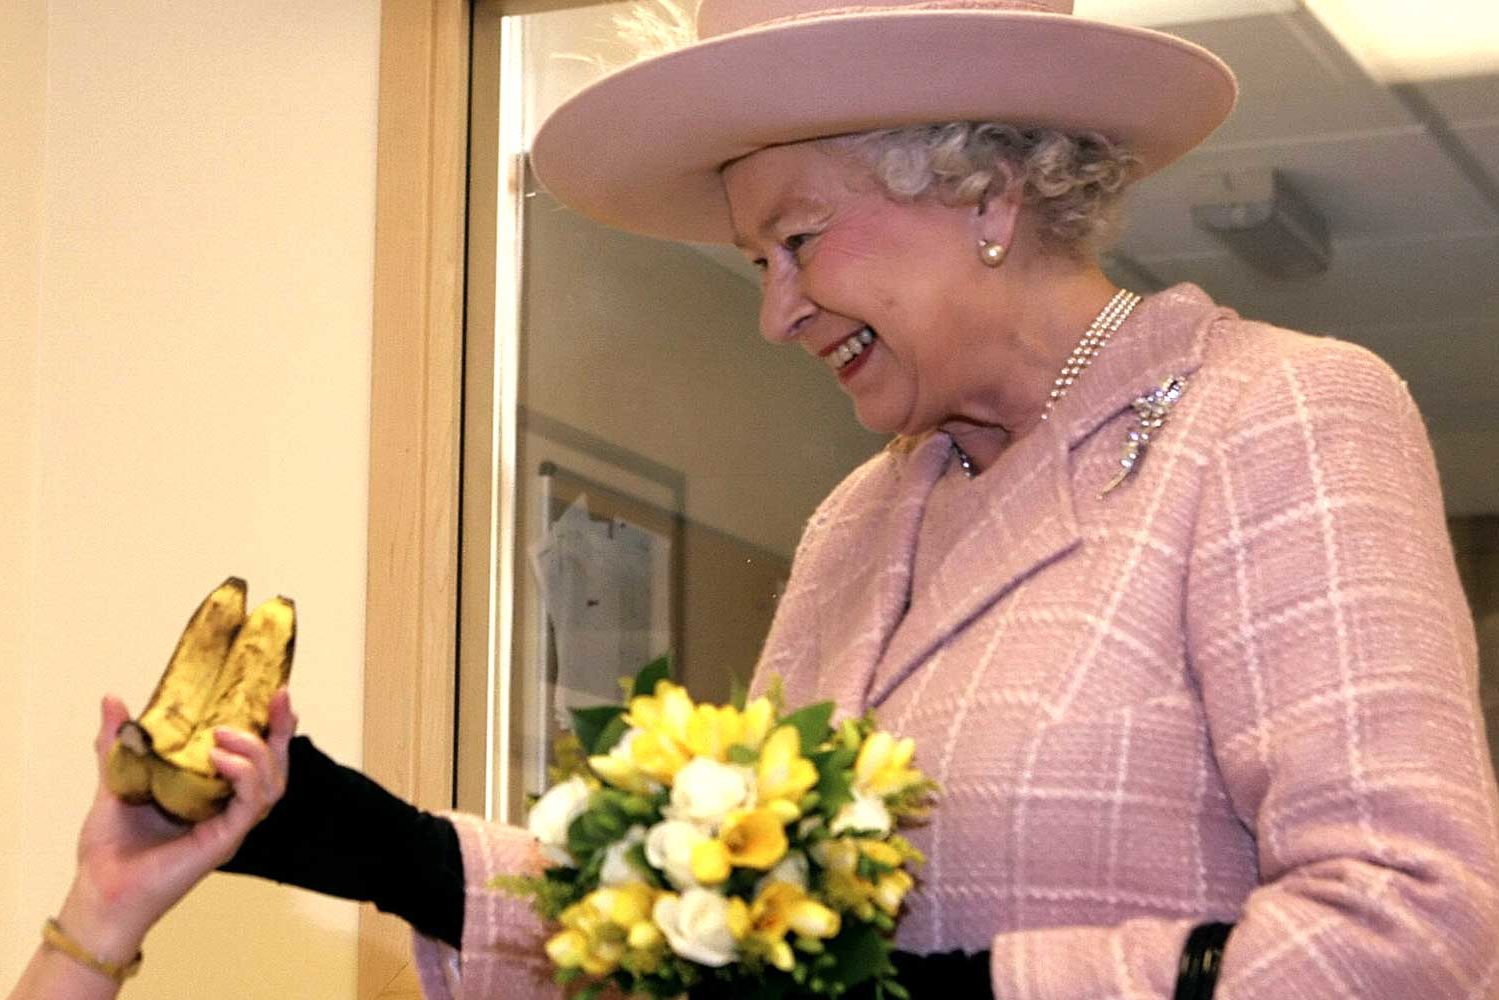 The Bizarre Way the Queen Eats Bananas